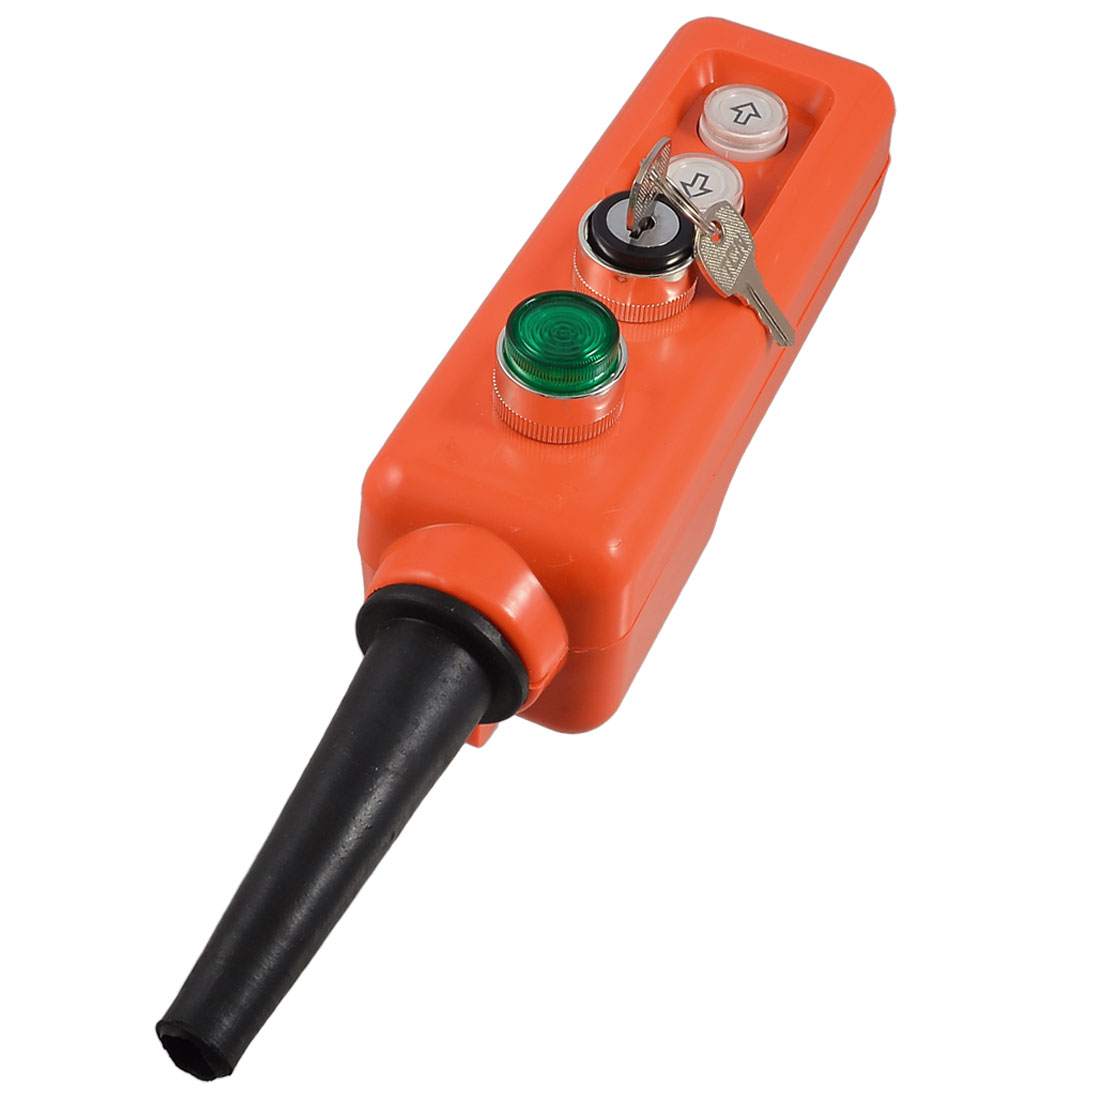 24V Keylock 3 Position Selector Green Lamp Up-down Hoist Push Button Switch - image 1 of 1